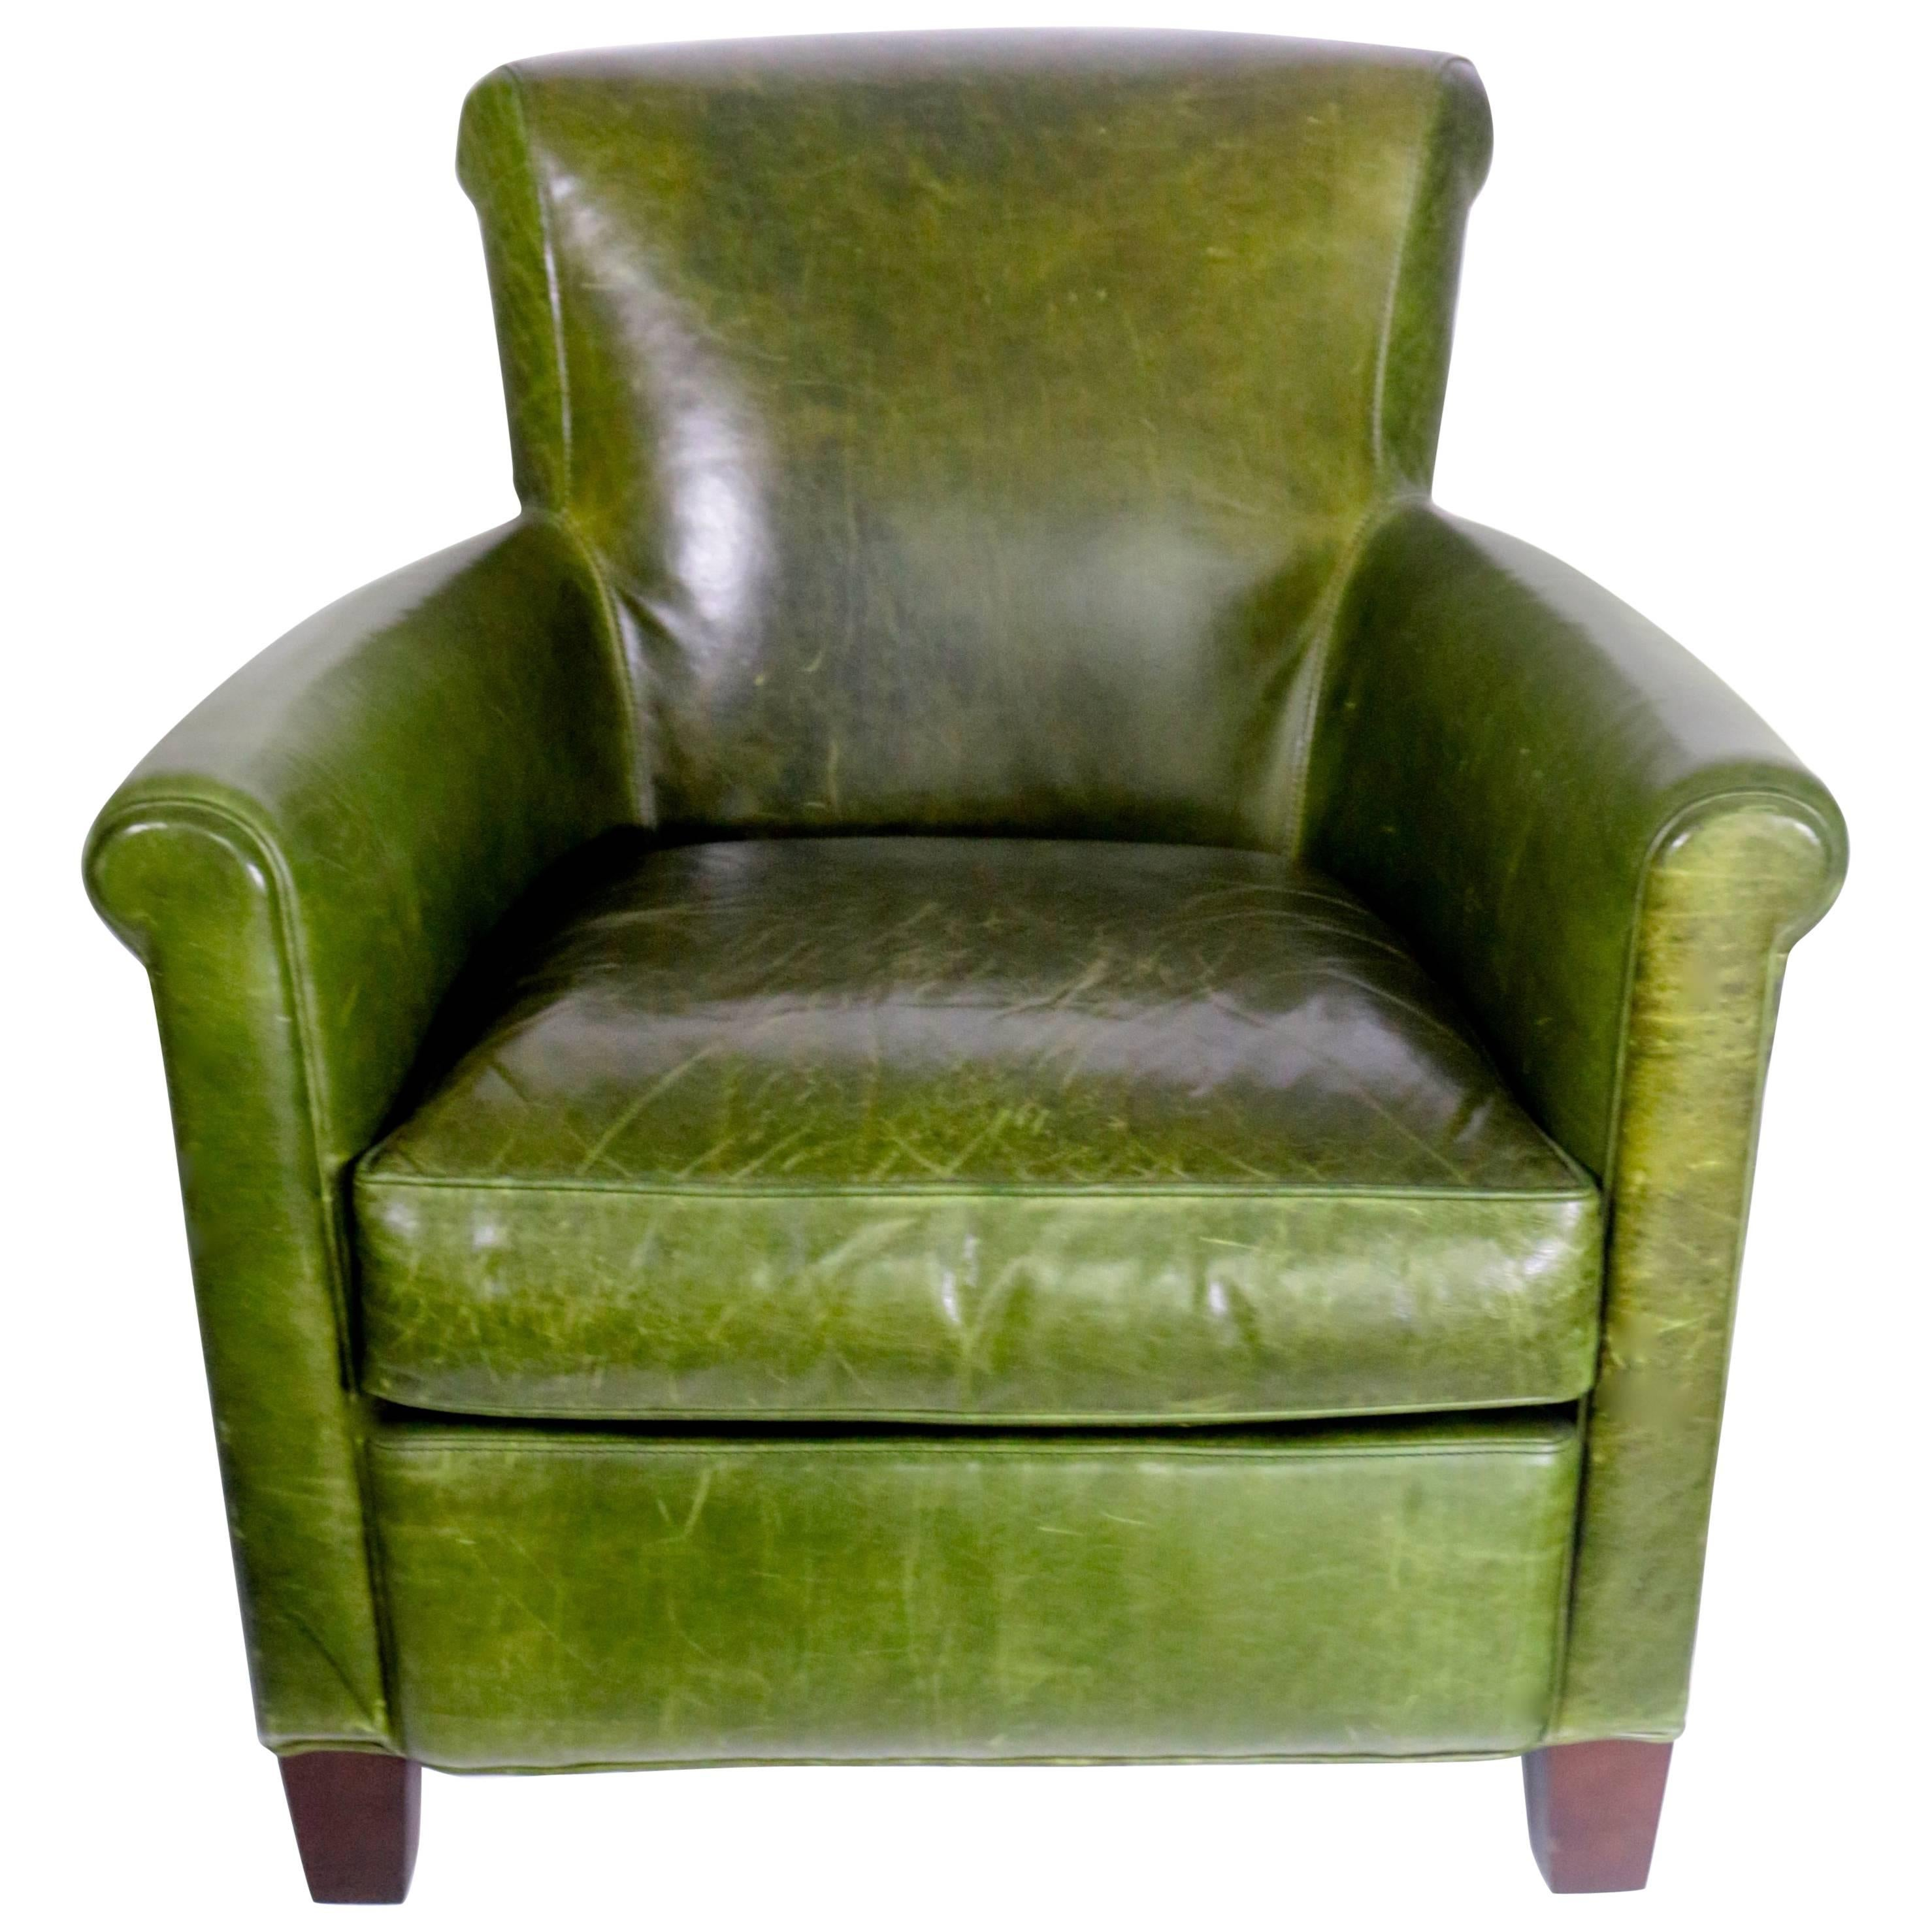 Antique French Distressed Emerald Green Leather Club Chair For Sale